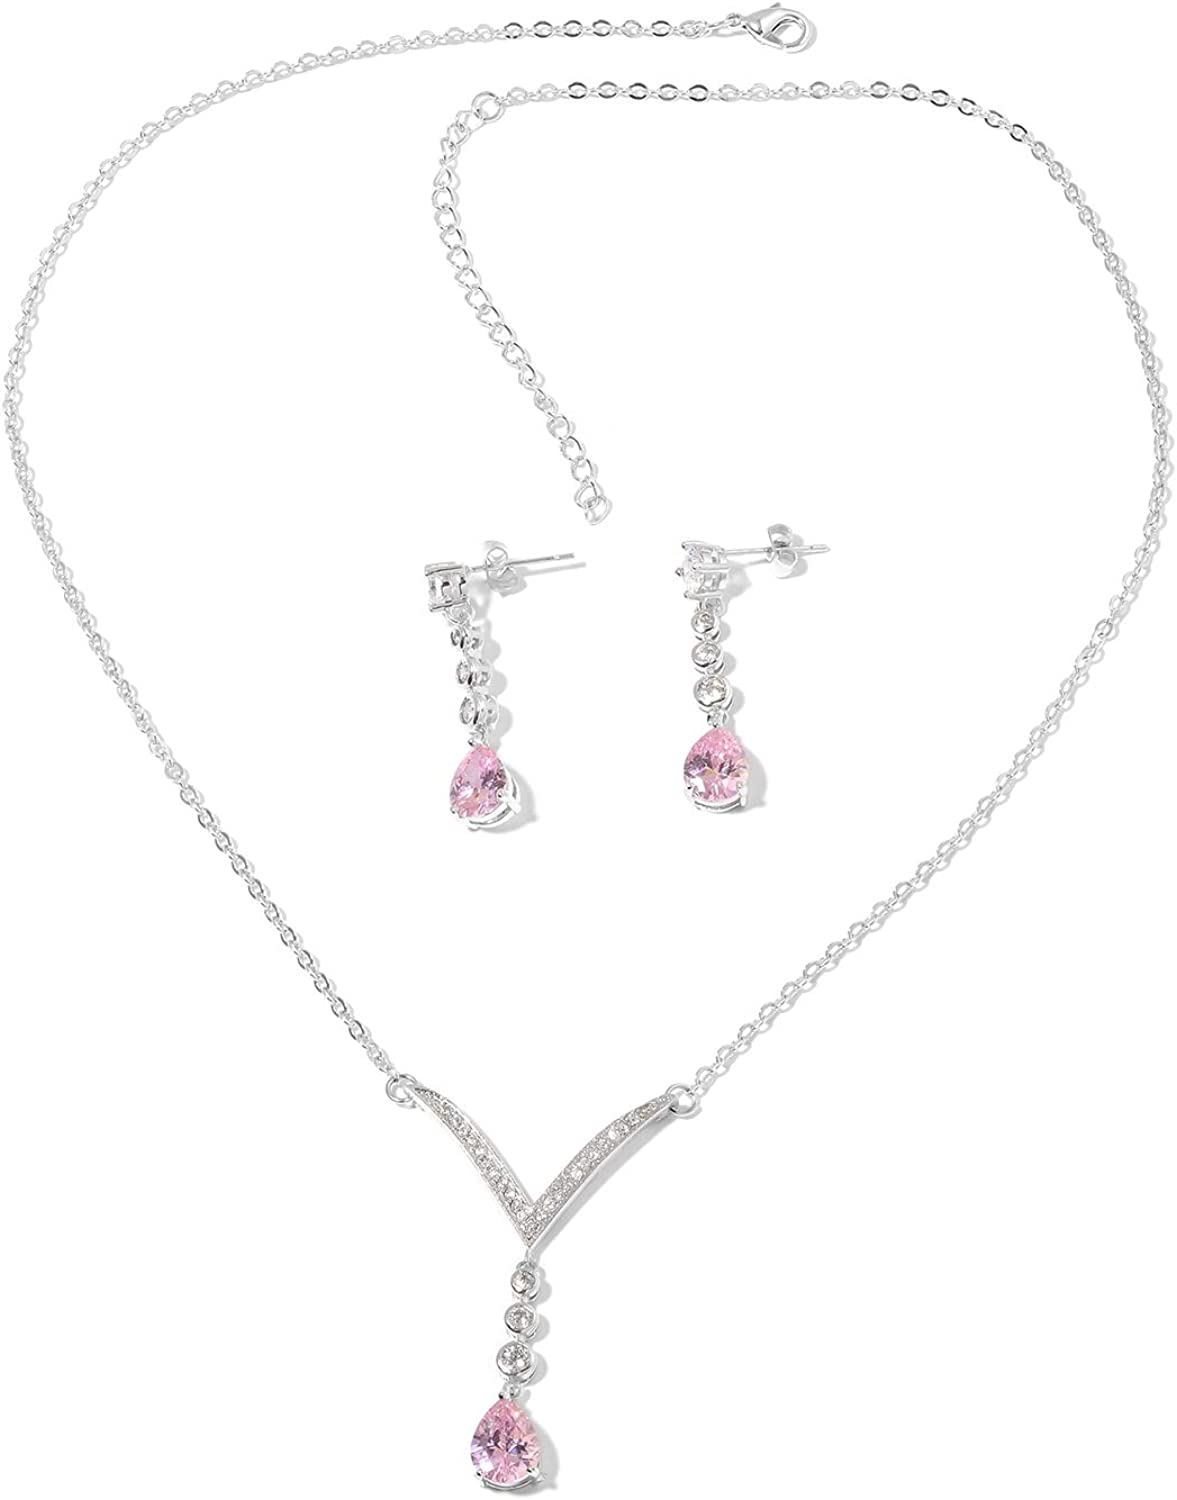 Shop LC Genuine Diamond Pink Cubic Zirconia CZ White Platinum Plated Earrings Necklace Prom Fashion Jewelry Birthday Gifts Set for Women 18